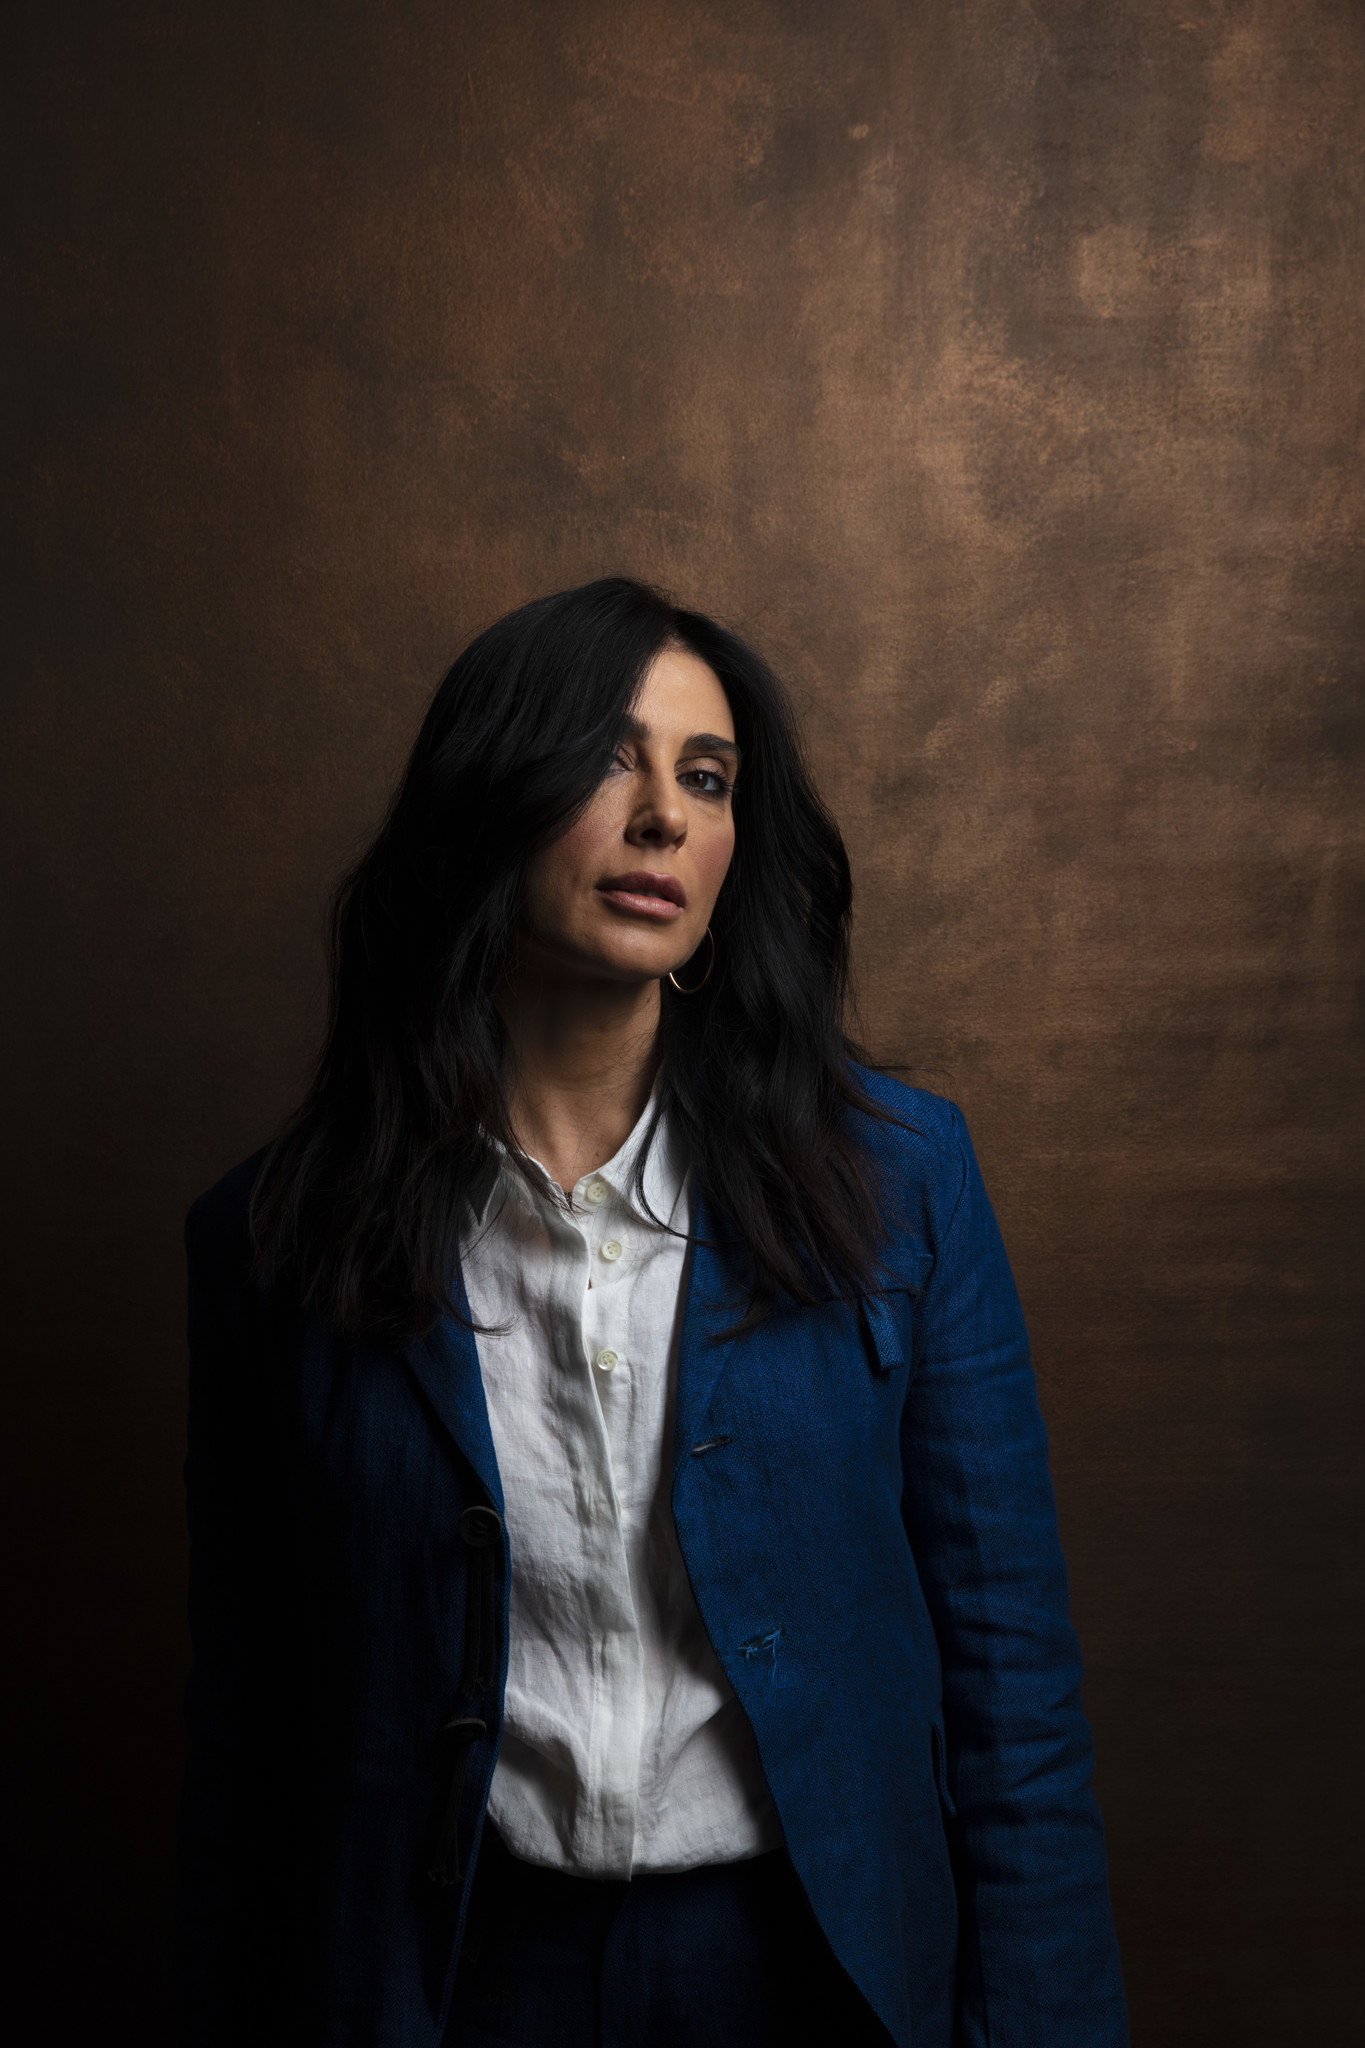 Nadine Labaki, director of the film